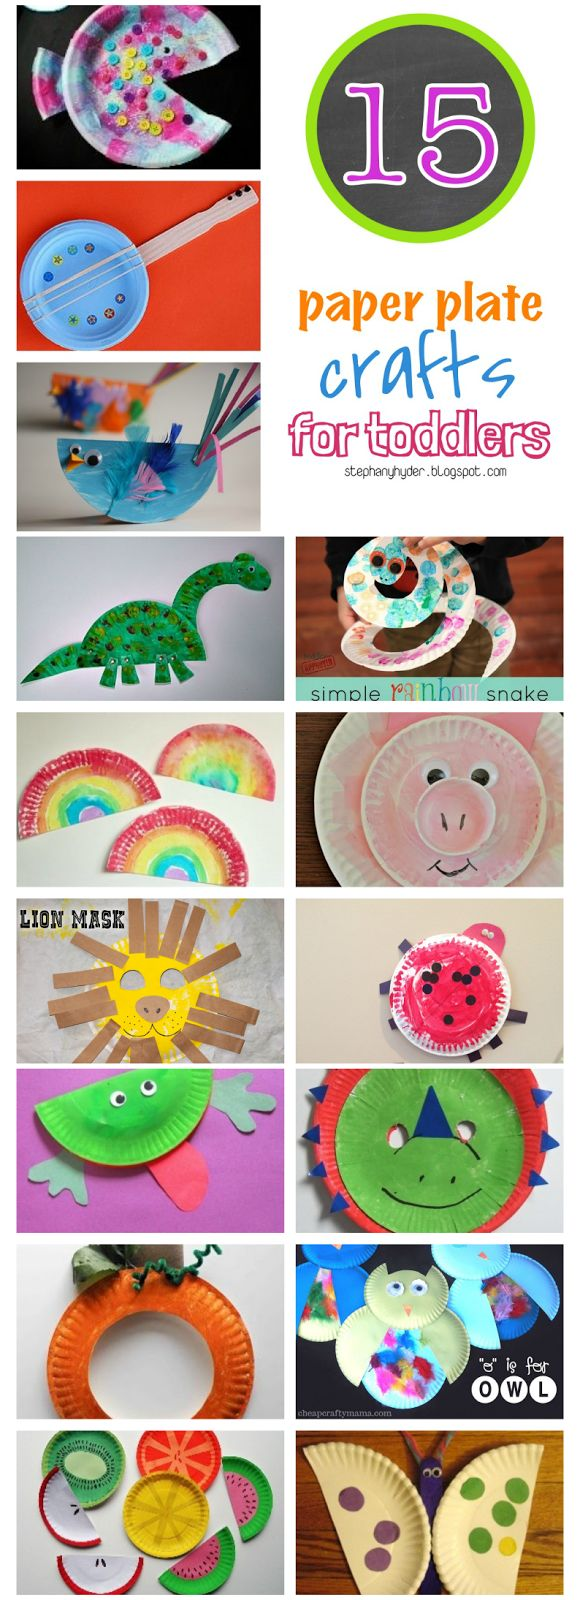 Website doesn't seem to be correct, but the pic is idea enough. 15 Paper Plate Crafts for Toddlers {roundup}